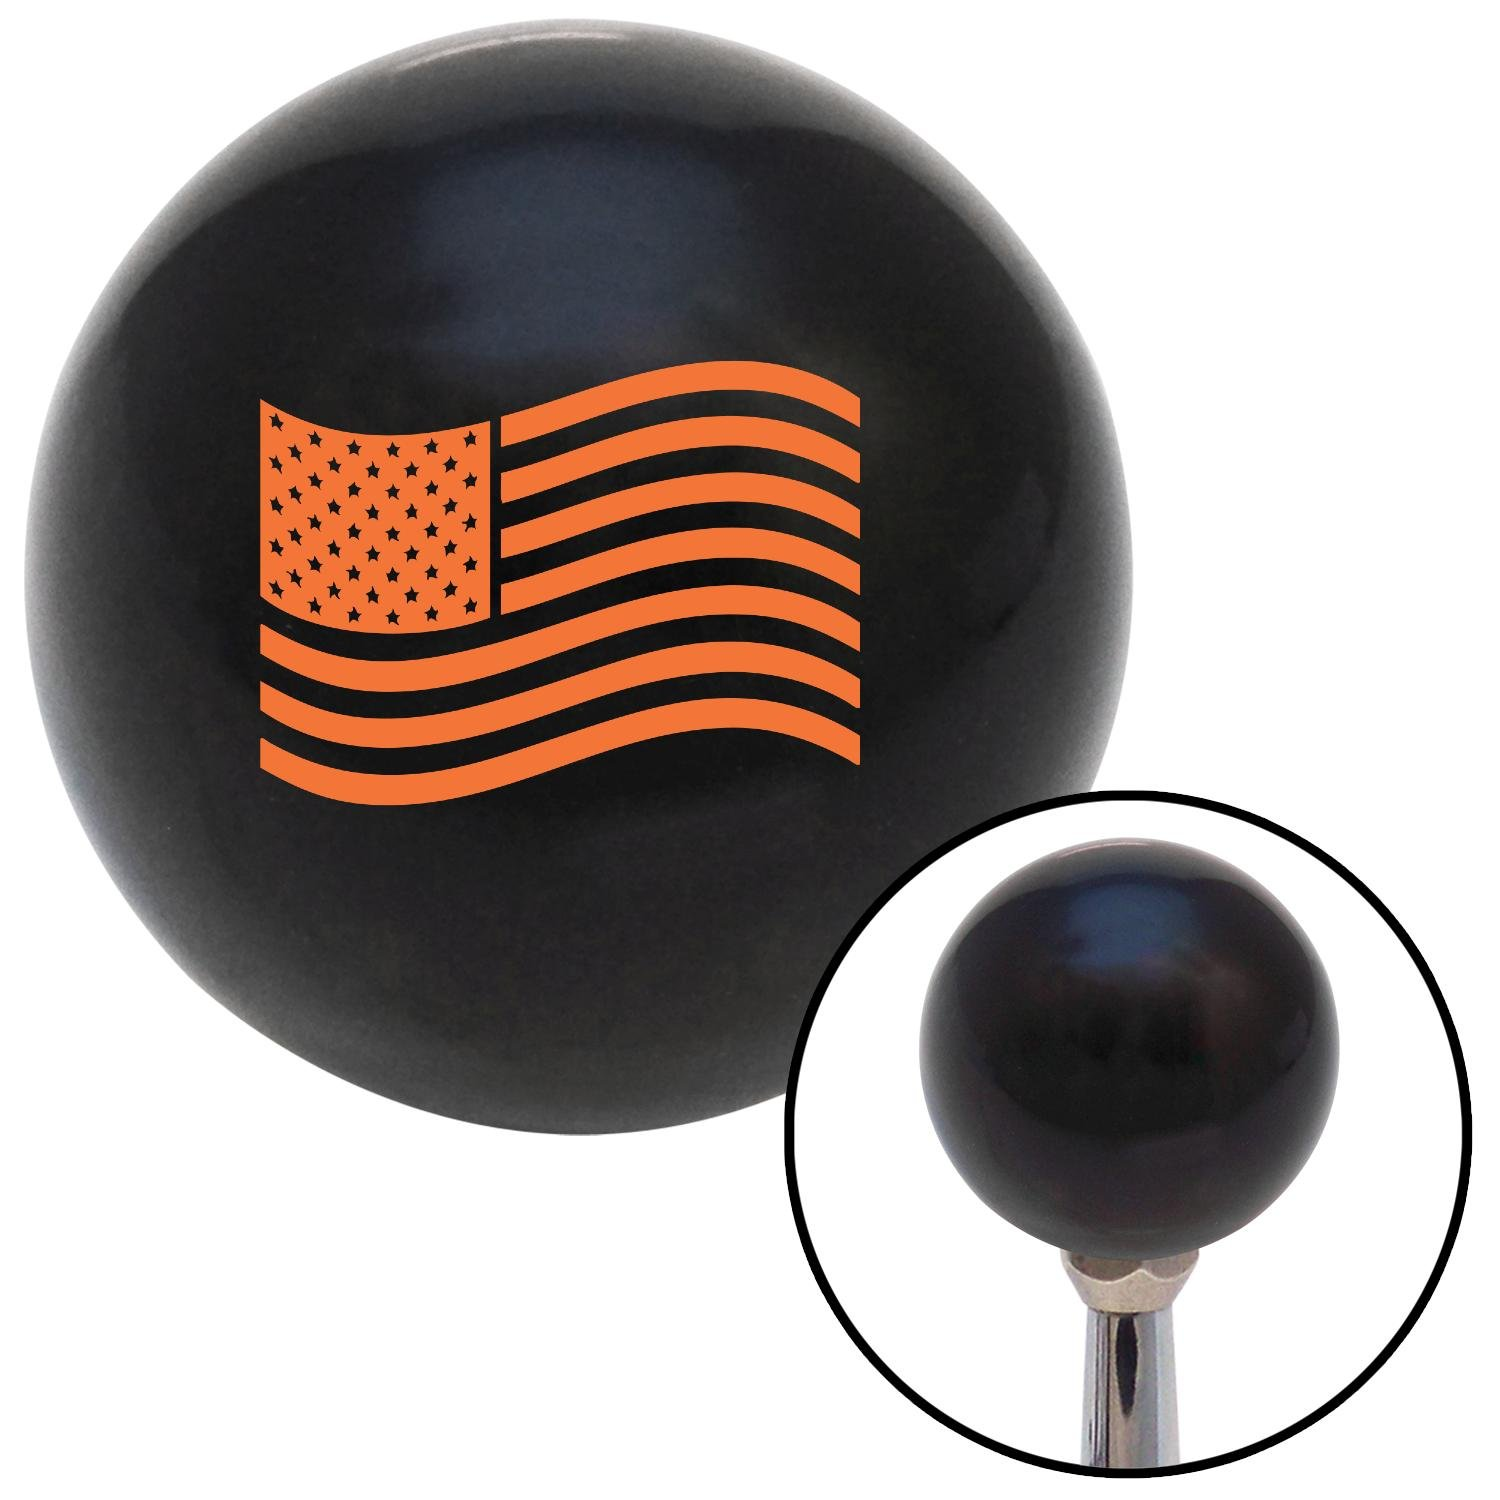 American Shifter 110304 Black Shift Knob with M16 x 1.5 Insert Orange US Flag